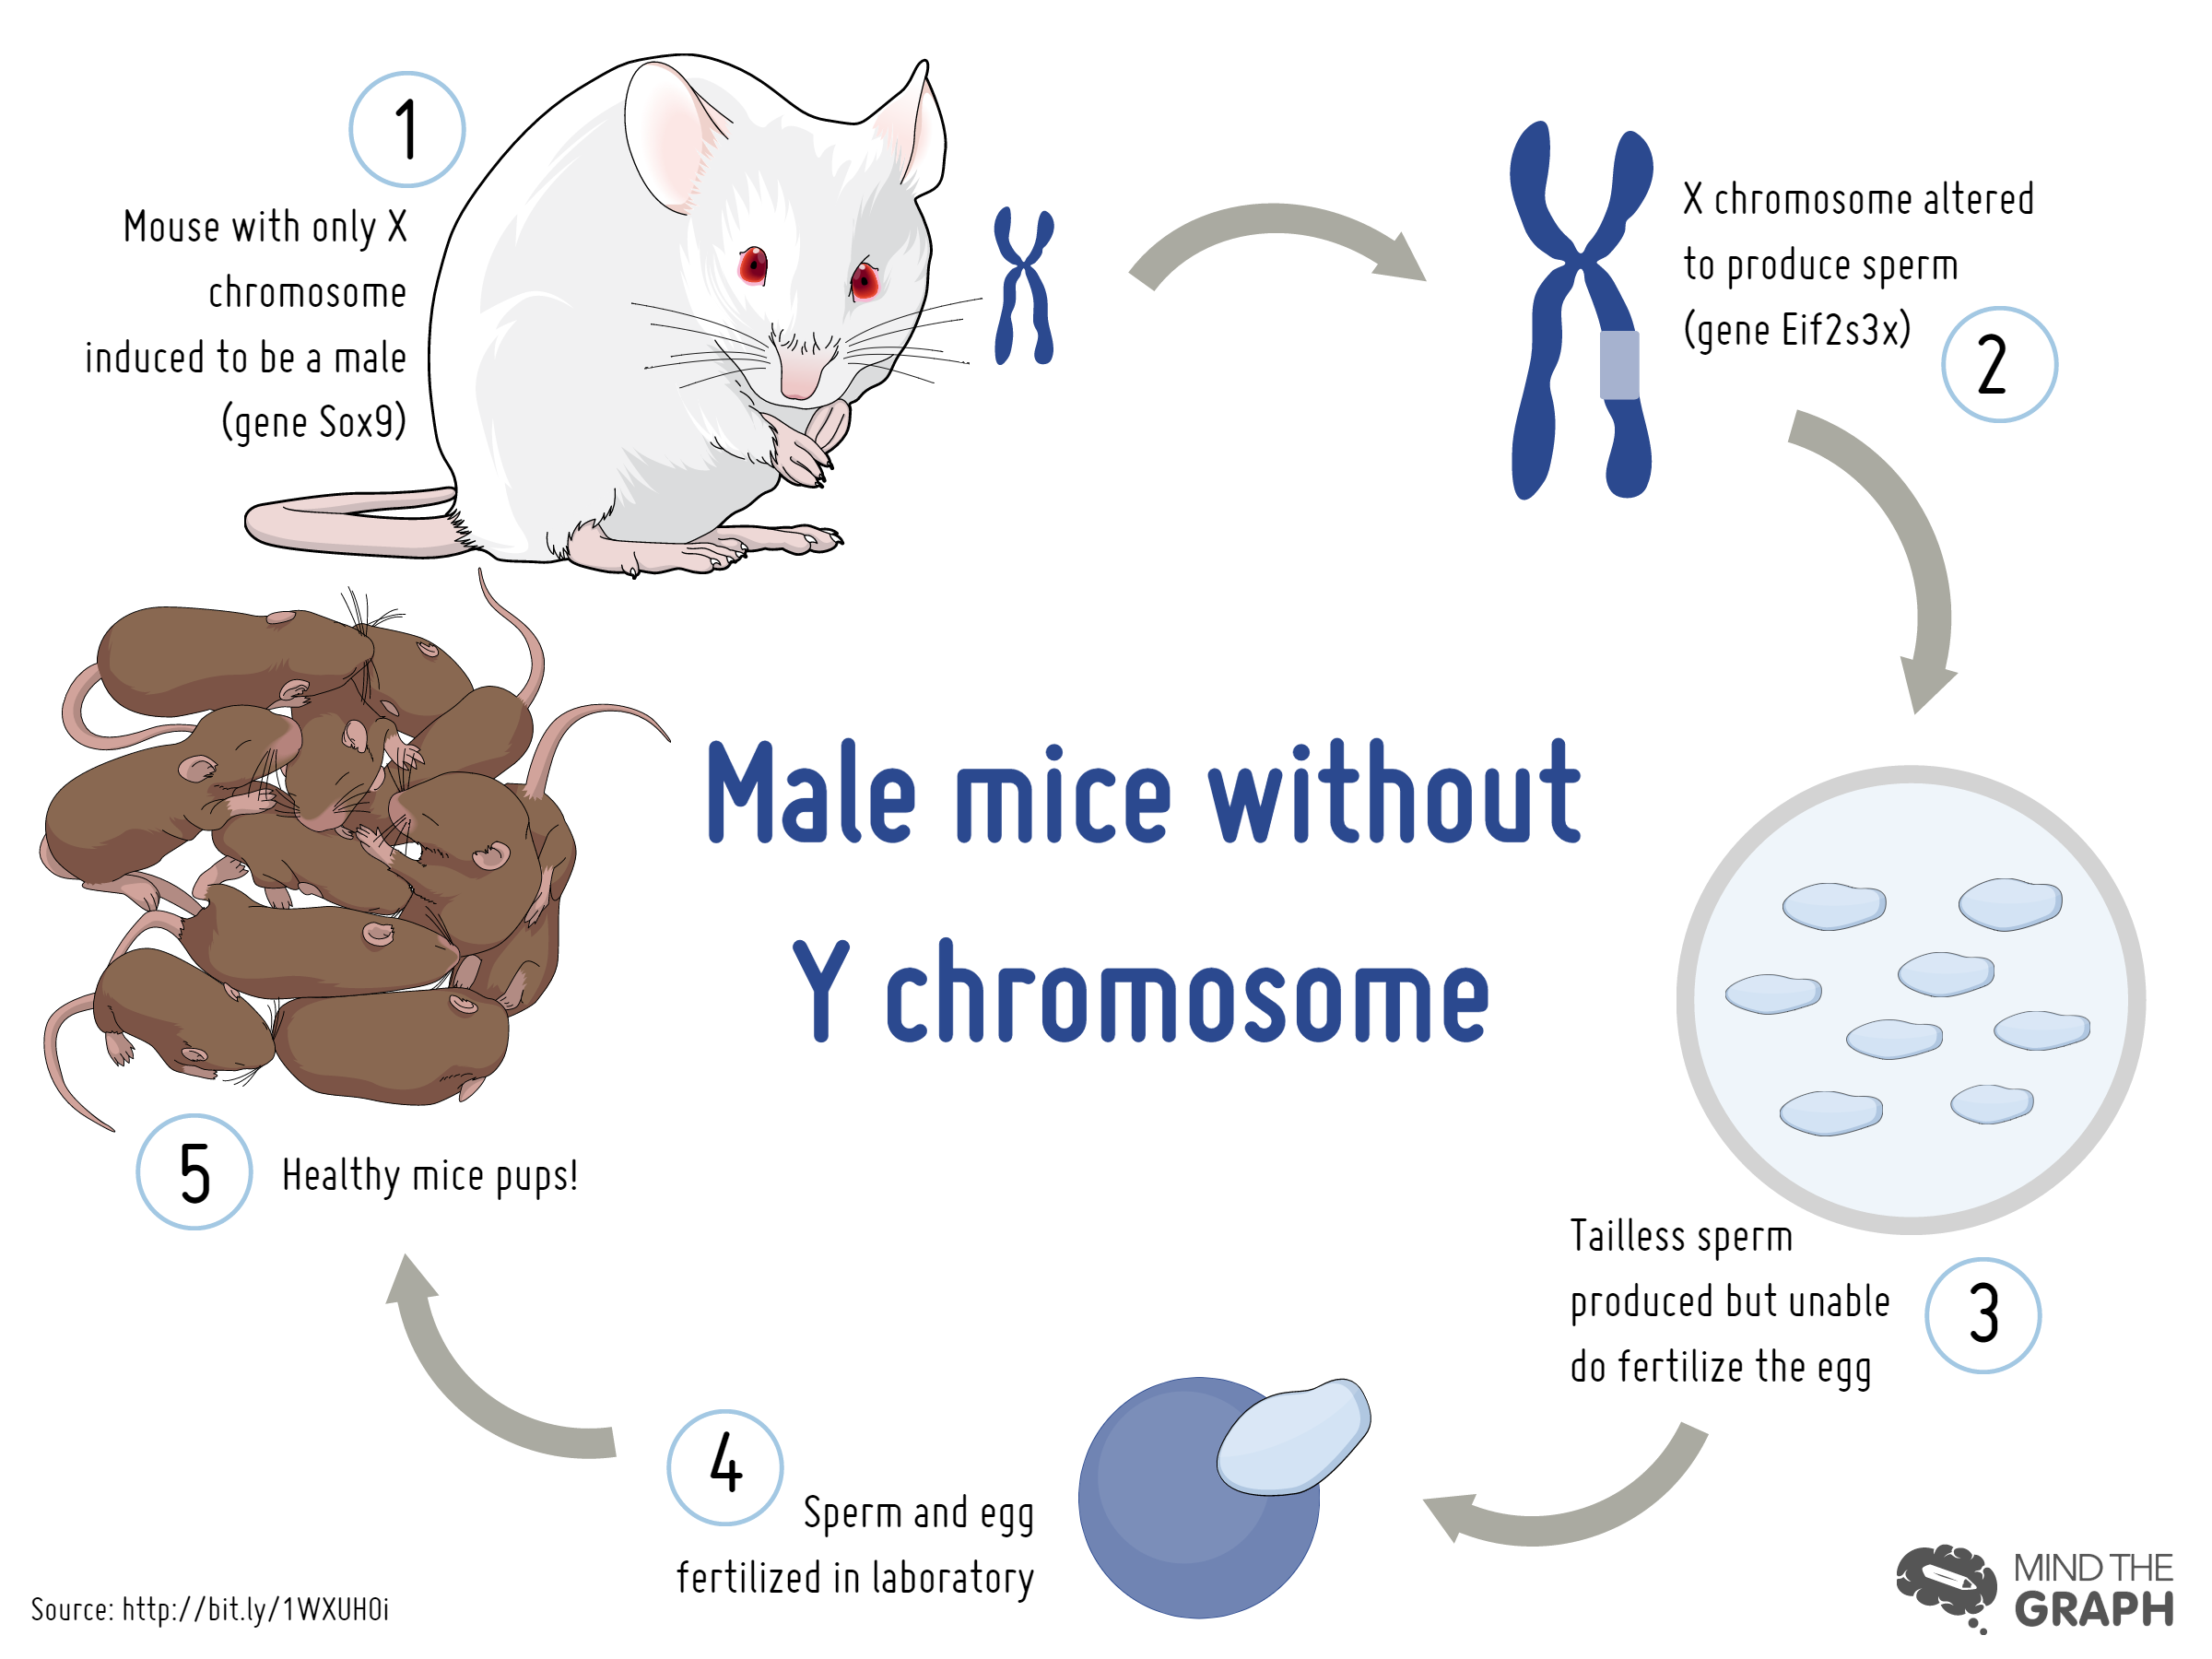 Male mice without Y chromosome